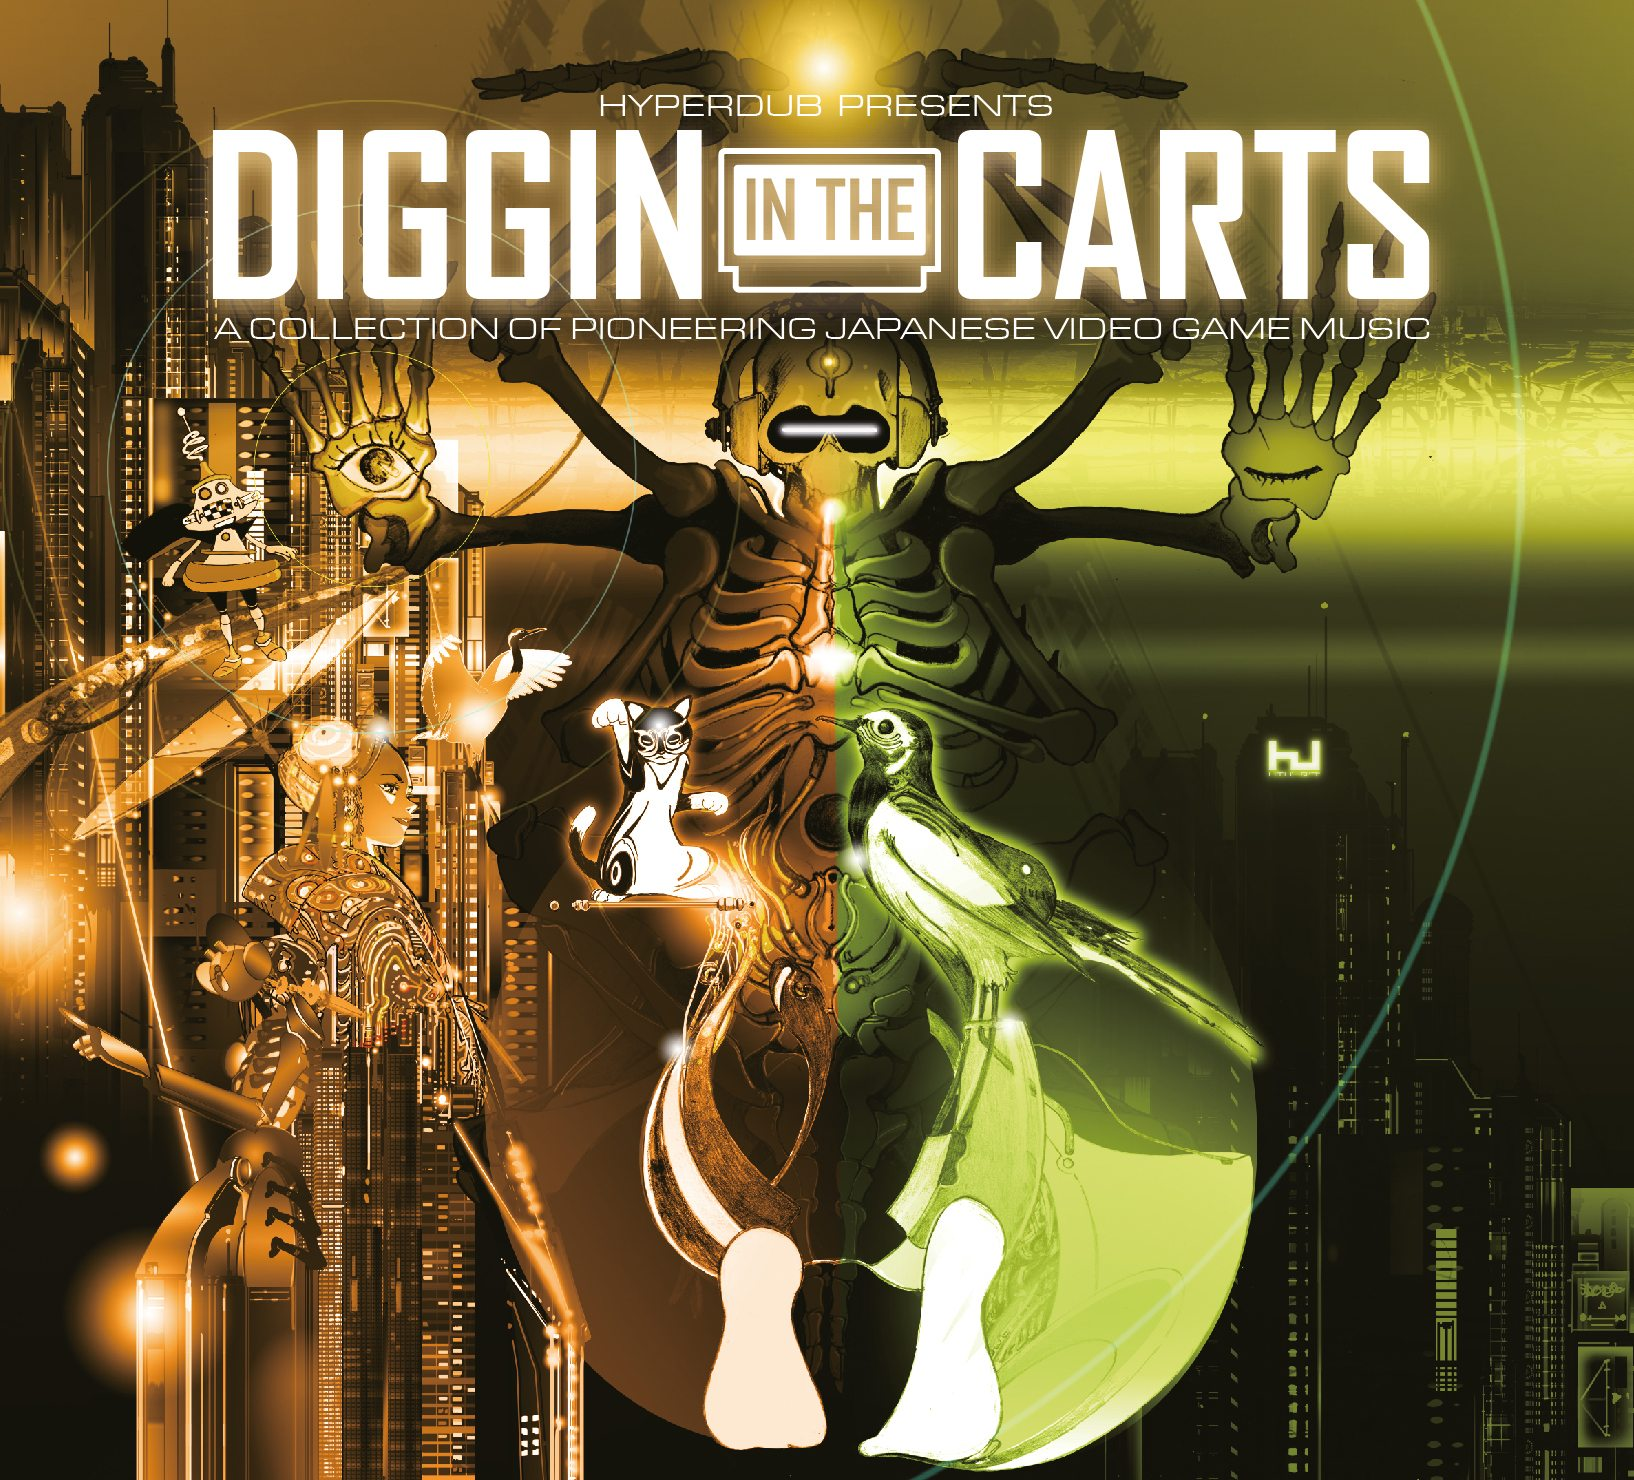 diggin in the carts hyperdub video game music